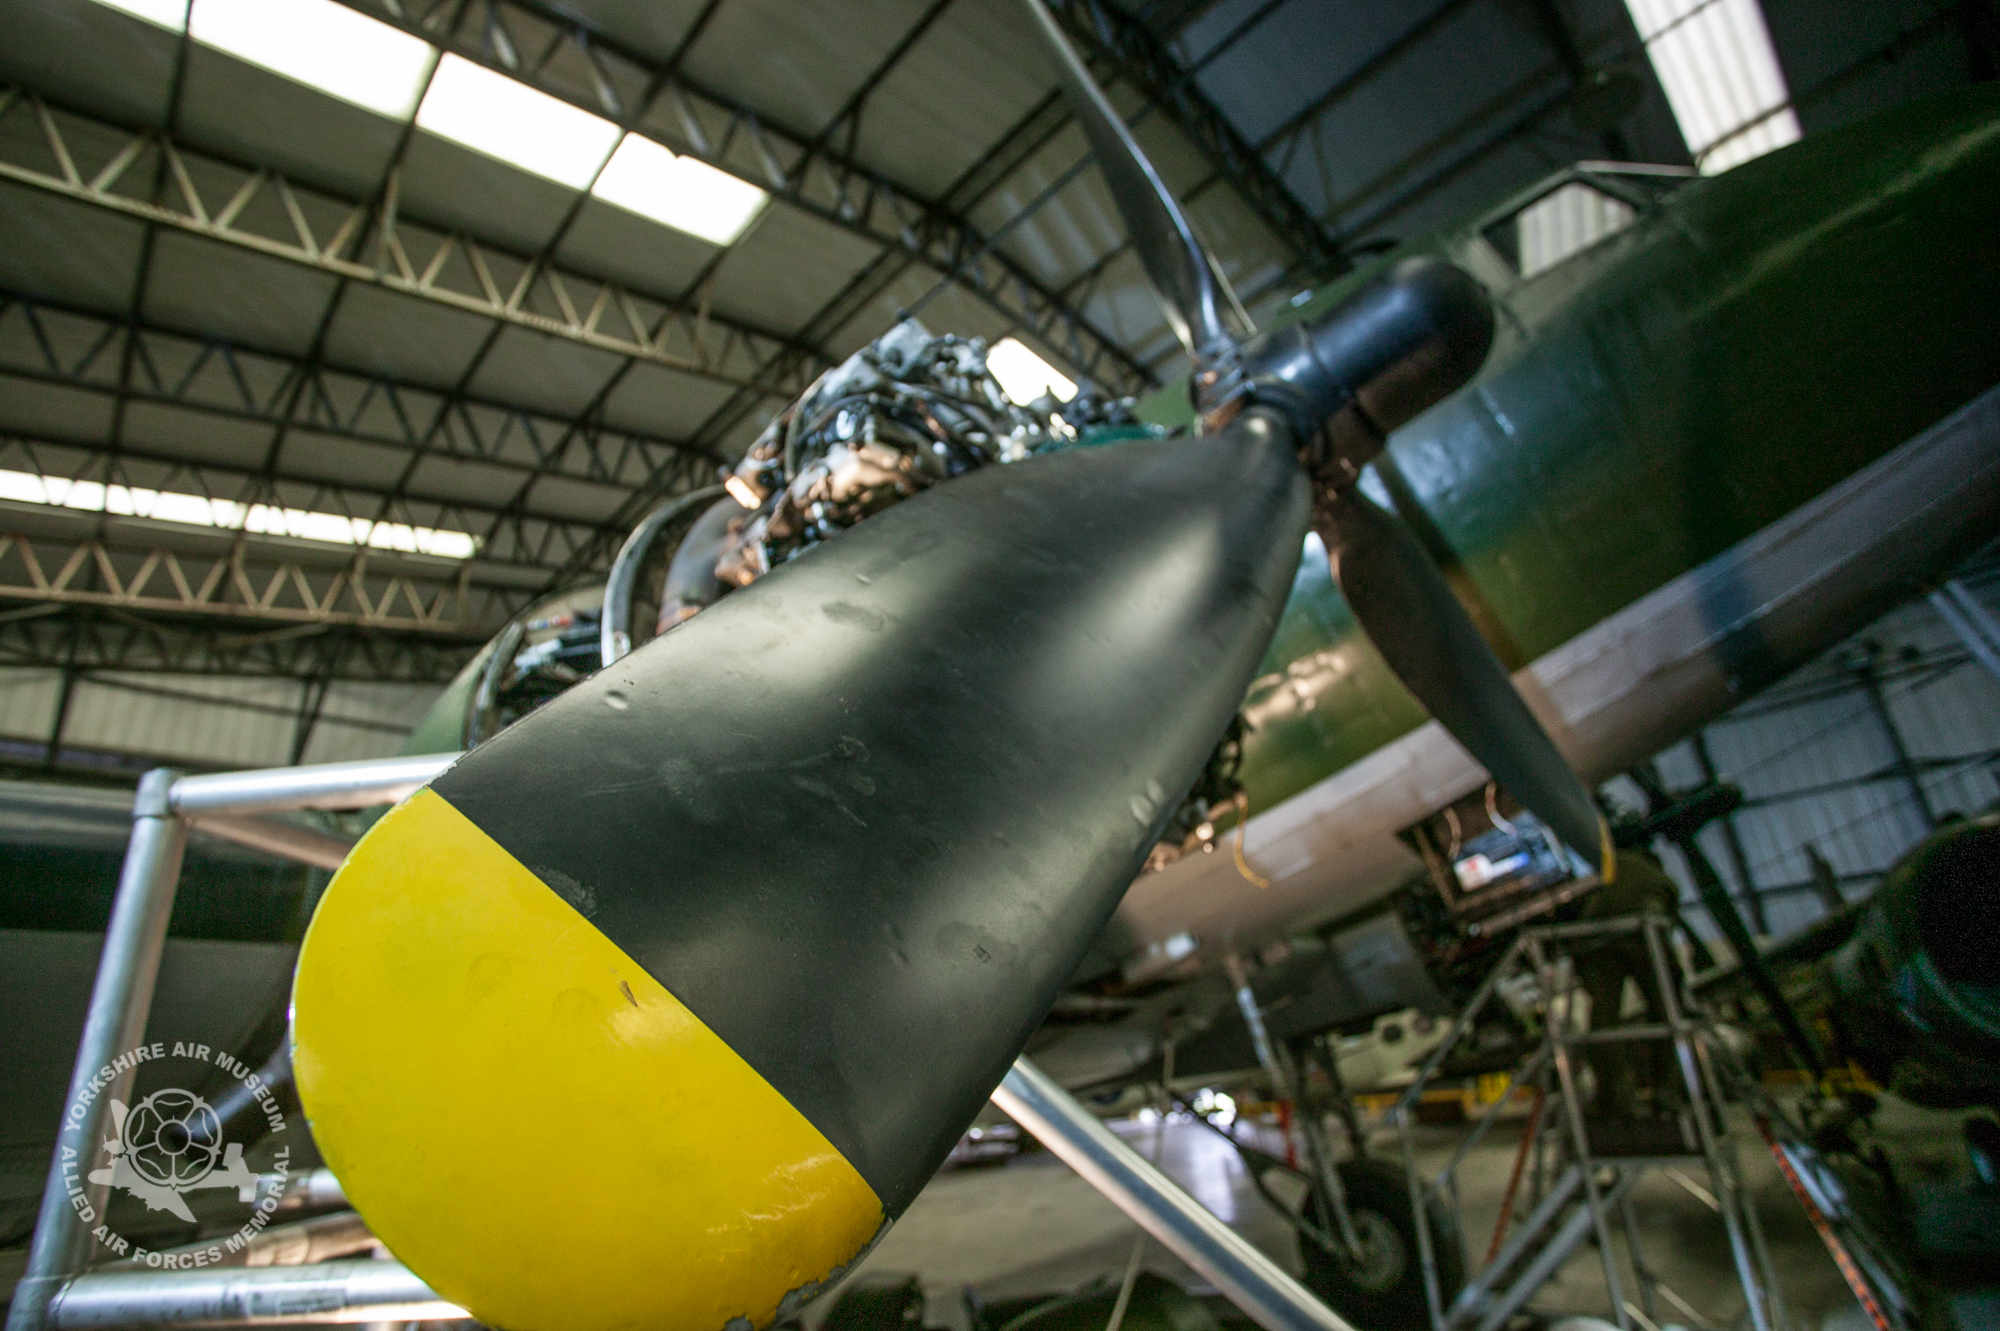 Gaining access to big radial engines can be rather complicated